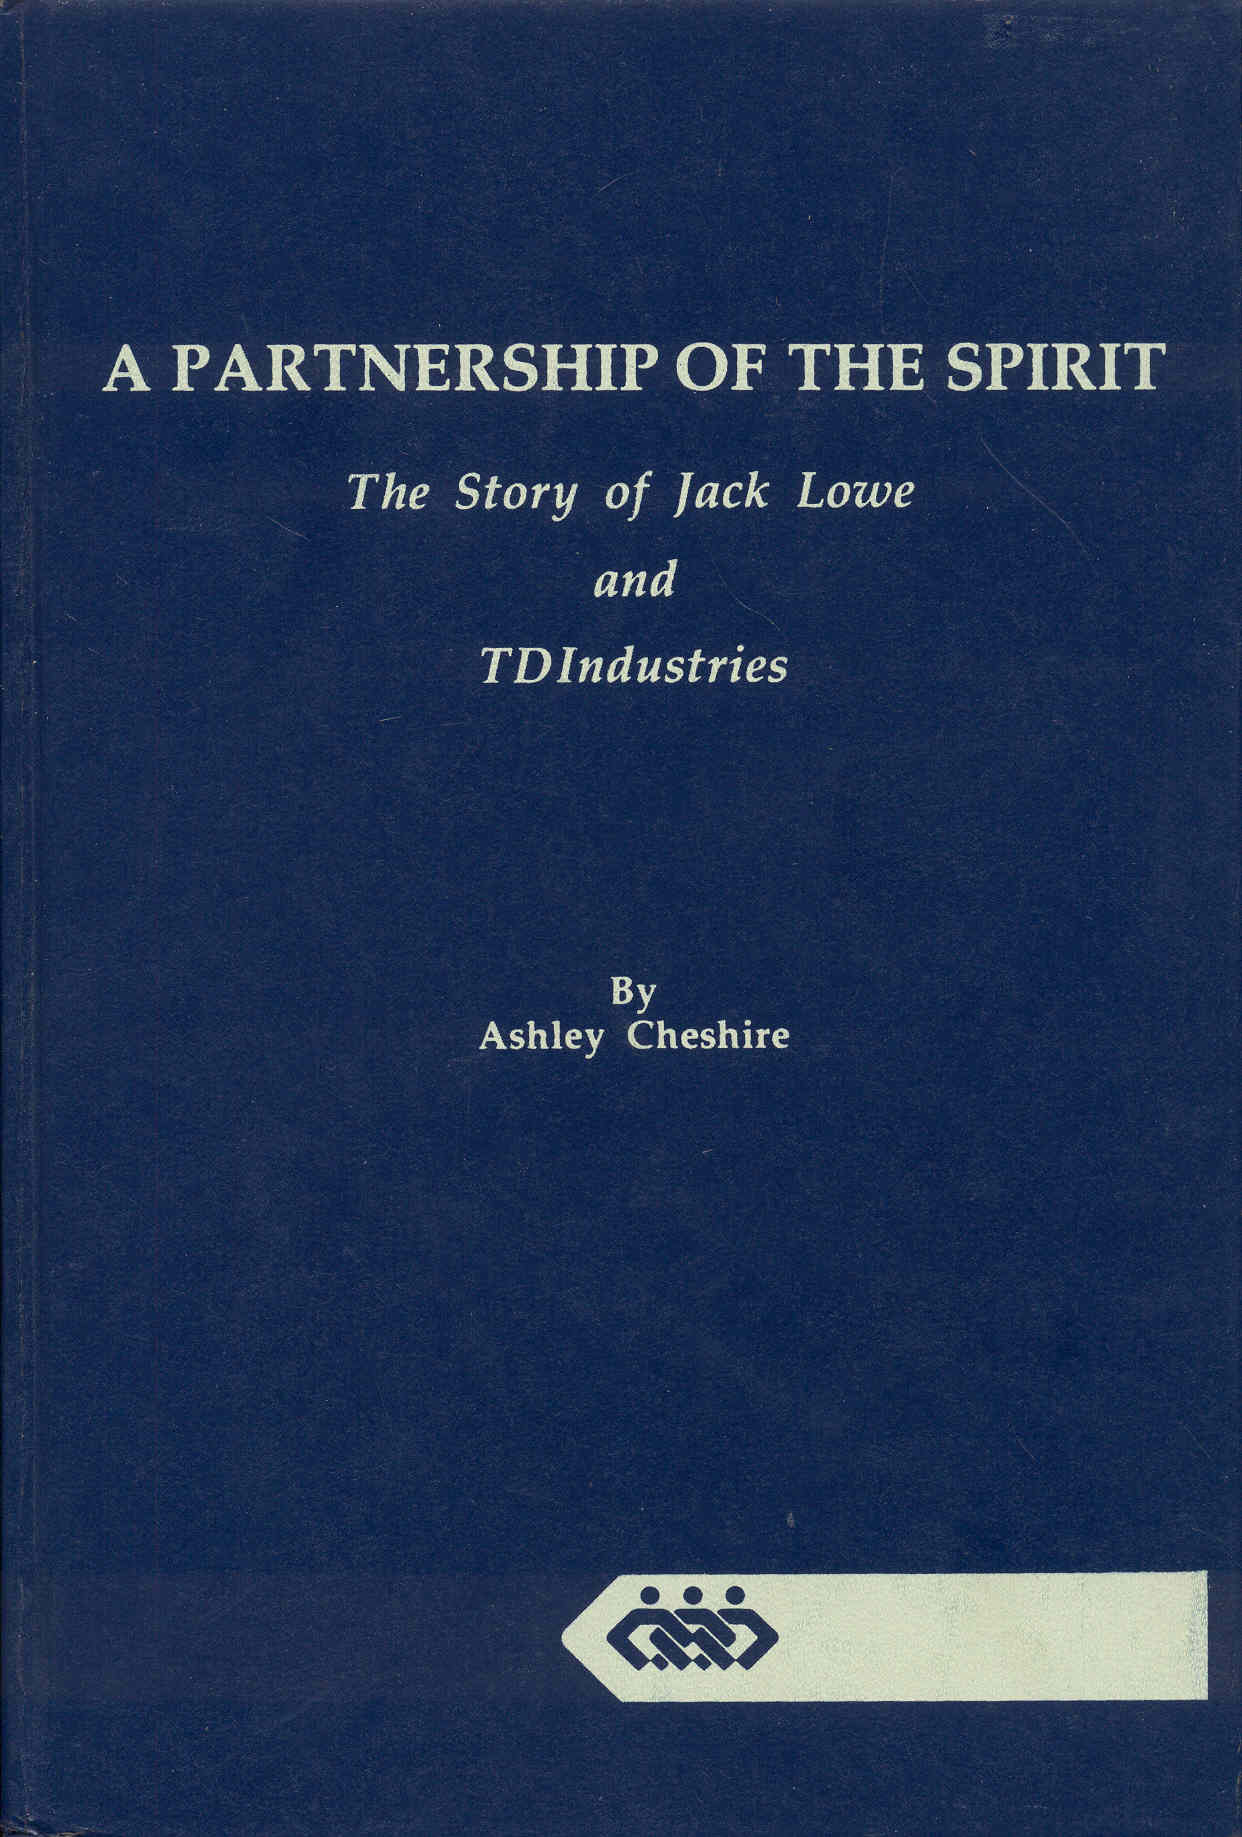 Image for A Partnership of the Spirit: The Story of Jack Lowe and TDIndustries